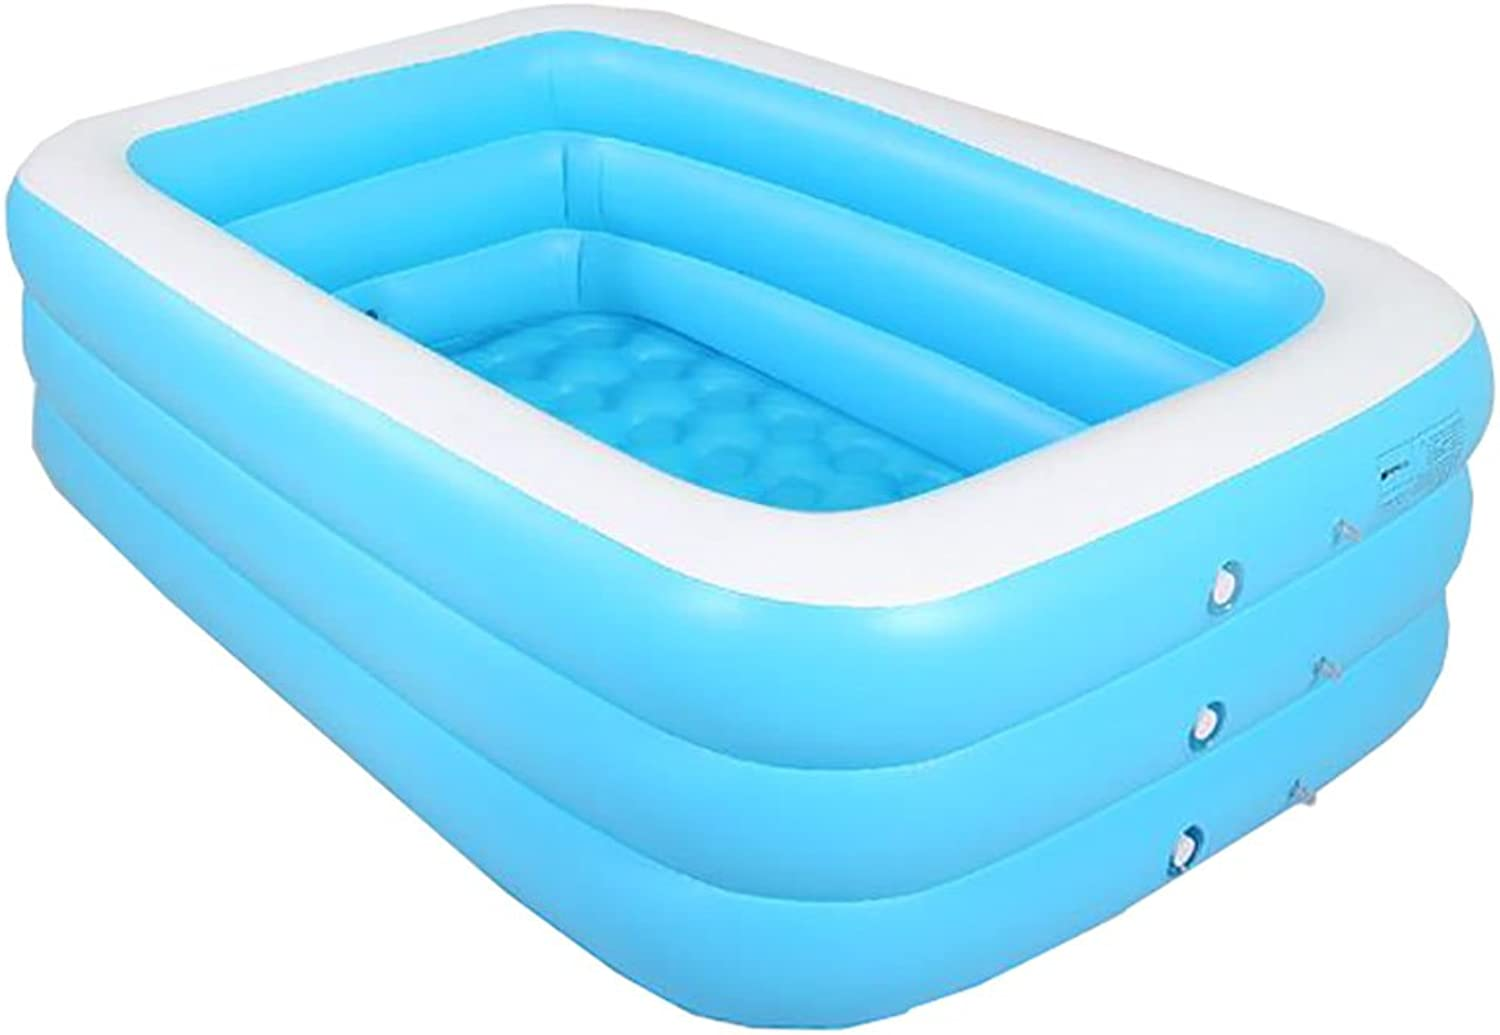 ZELIAN-Aerated Bathtub Bath Double Bath Home Adult Couple Electric Pump Inflatable Boy Baby Bath Tub Portable Folding bluee Thickened (Size   130cm)